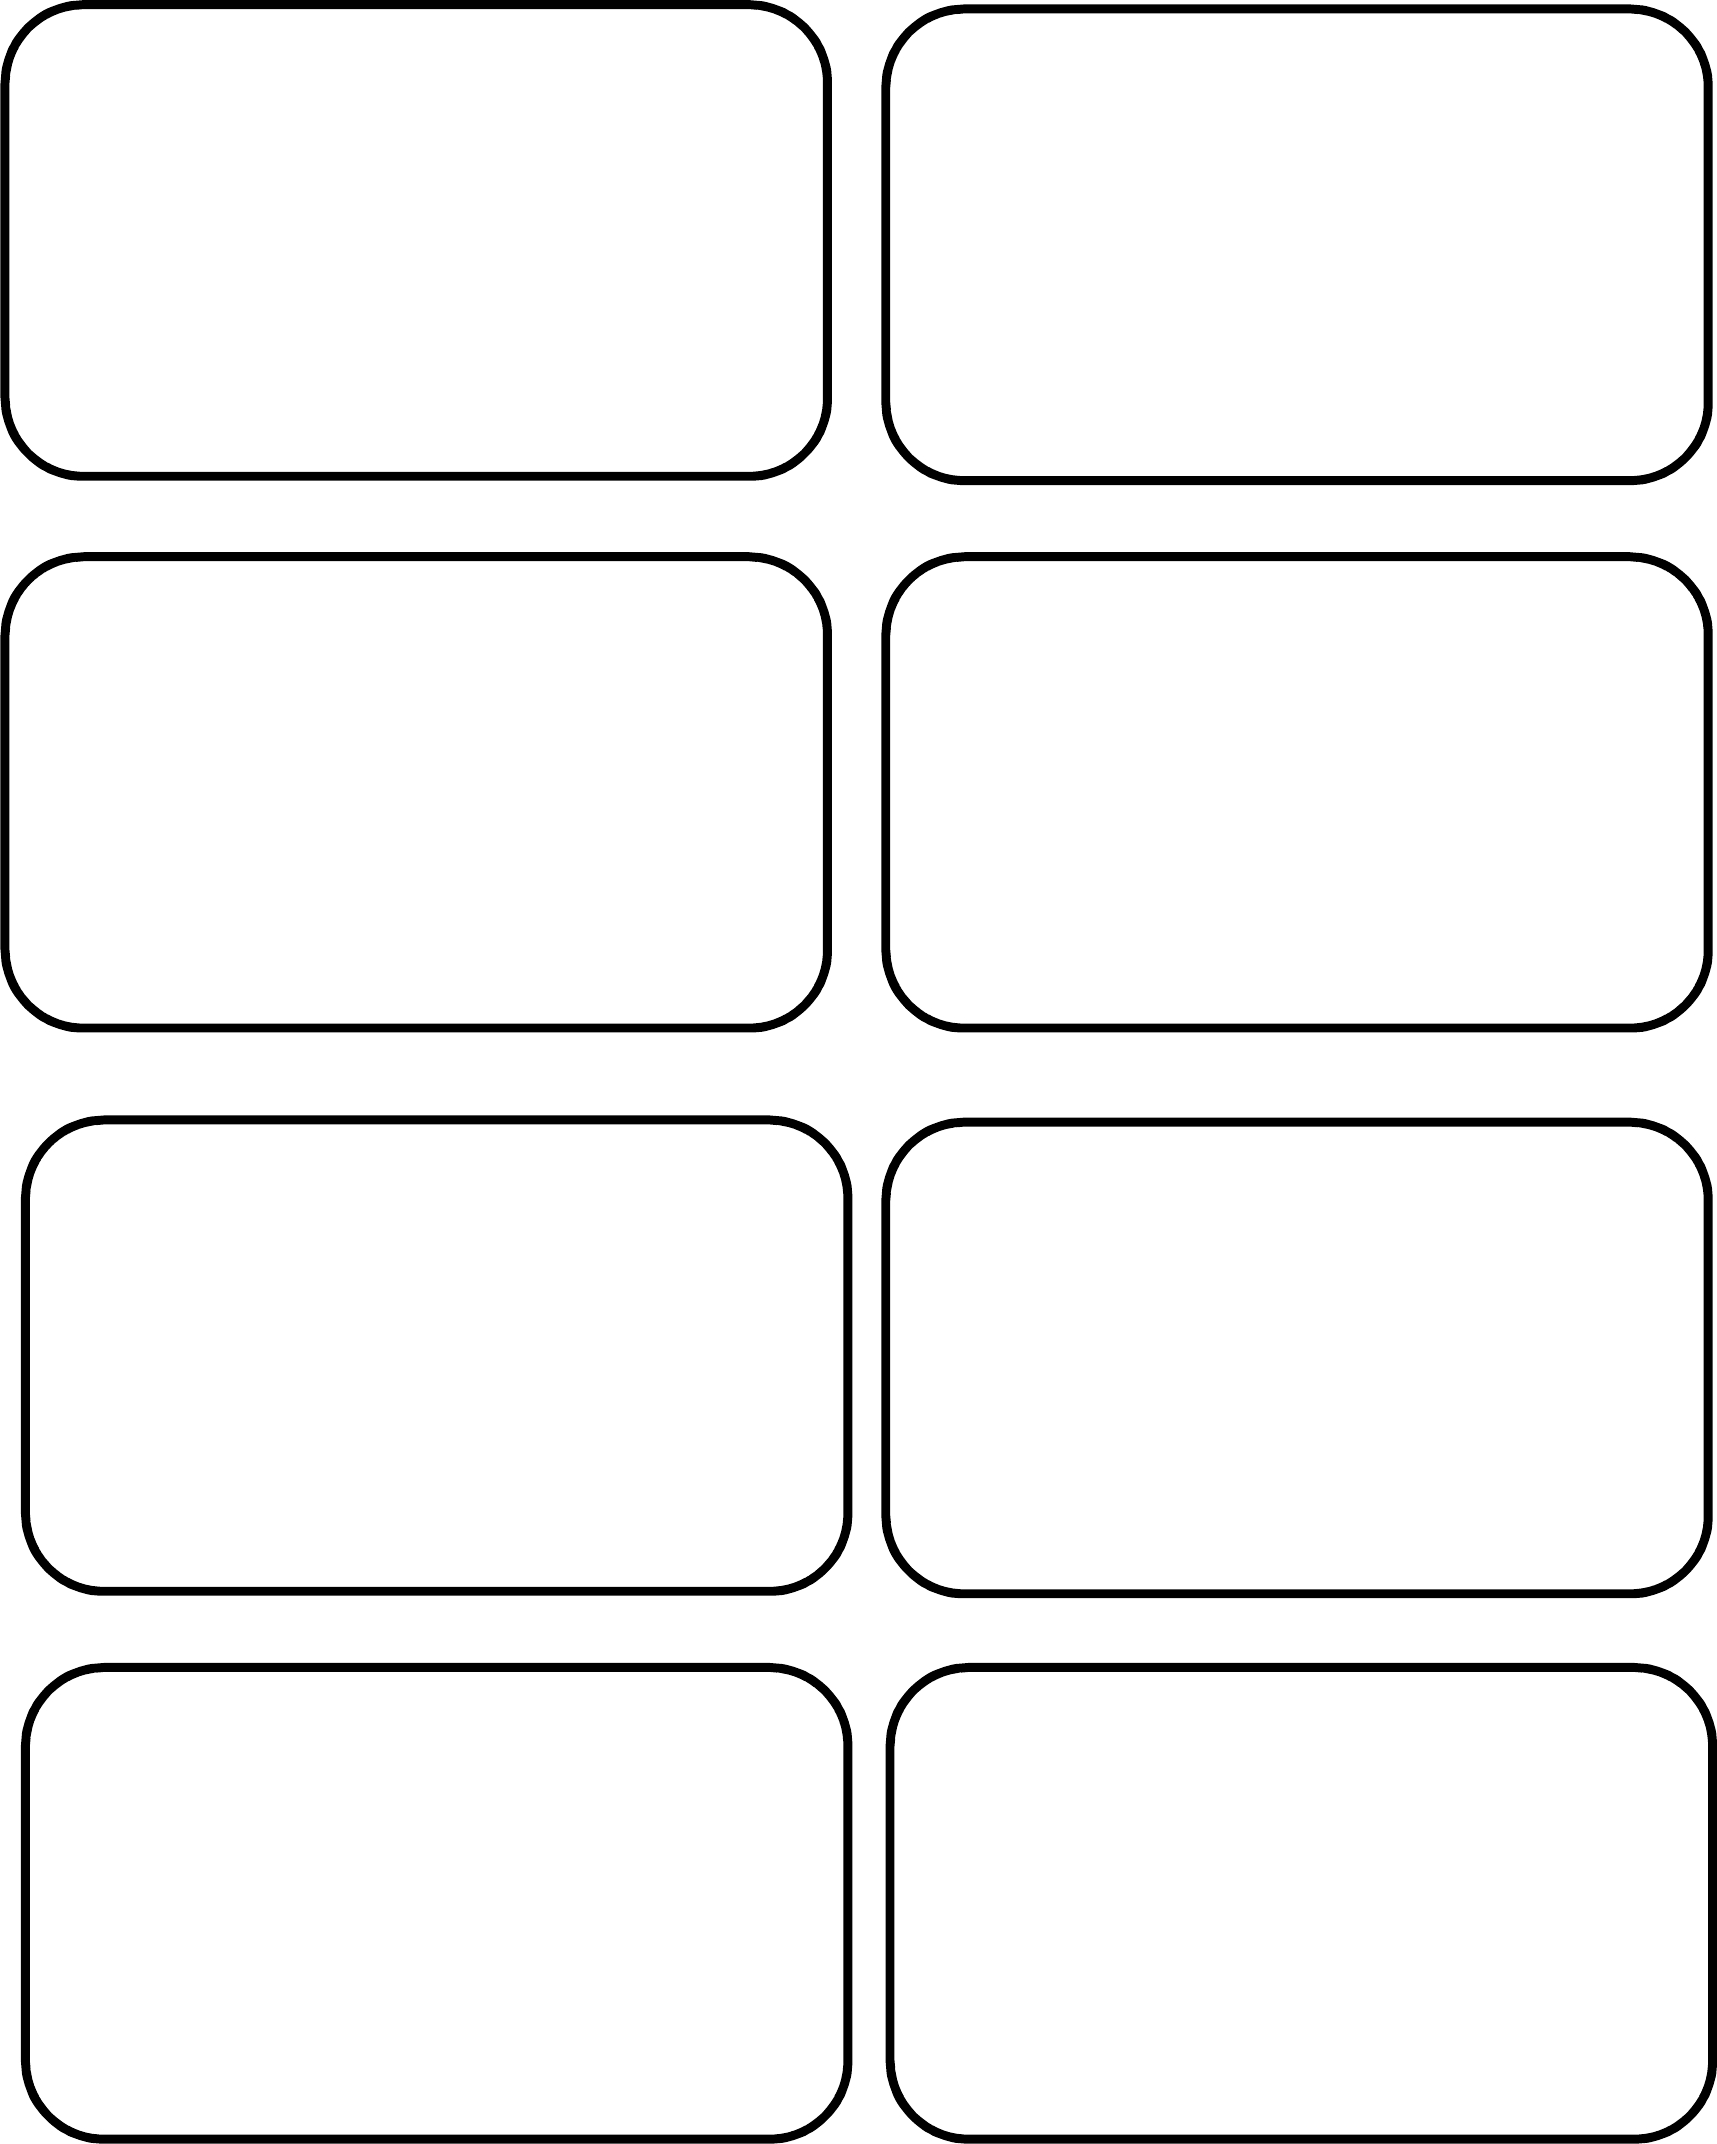 Printable Luggage Tag Templates   Download Them Or Print For Blank Luggage Tag Template